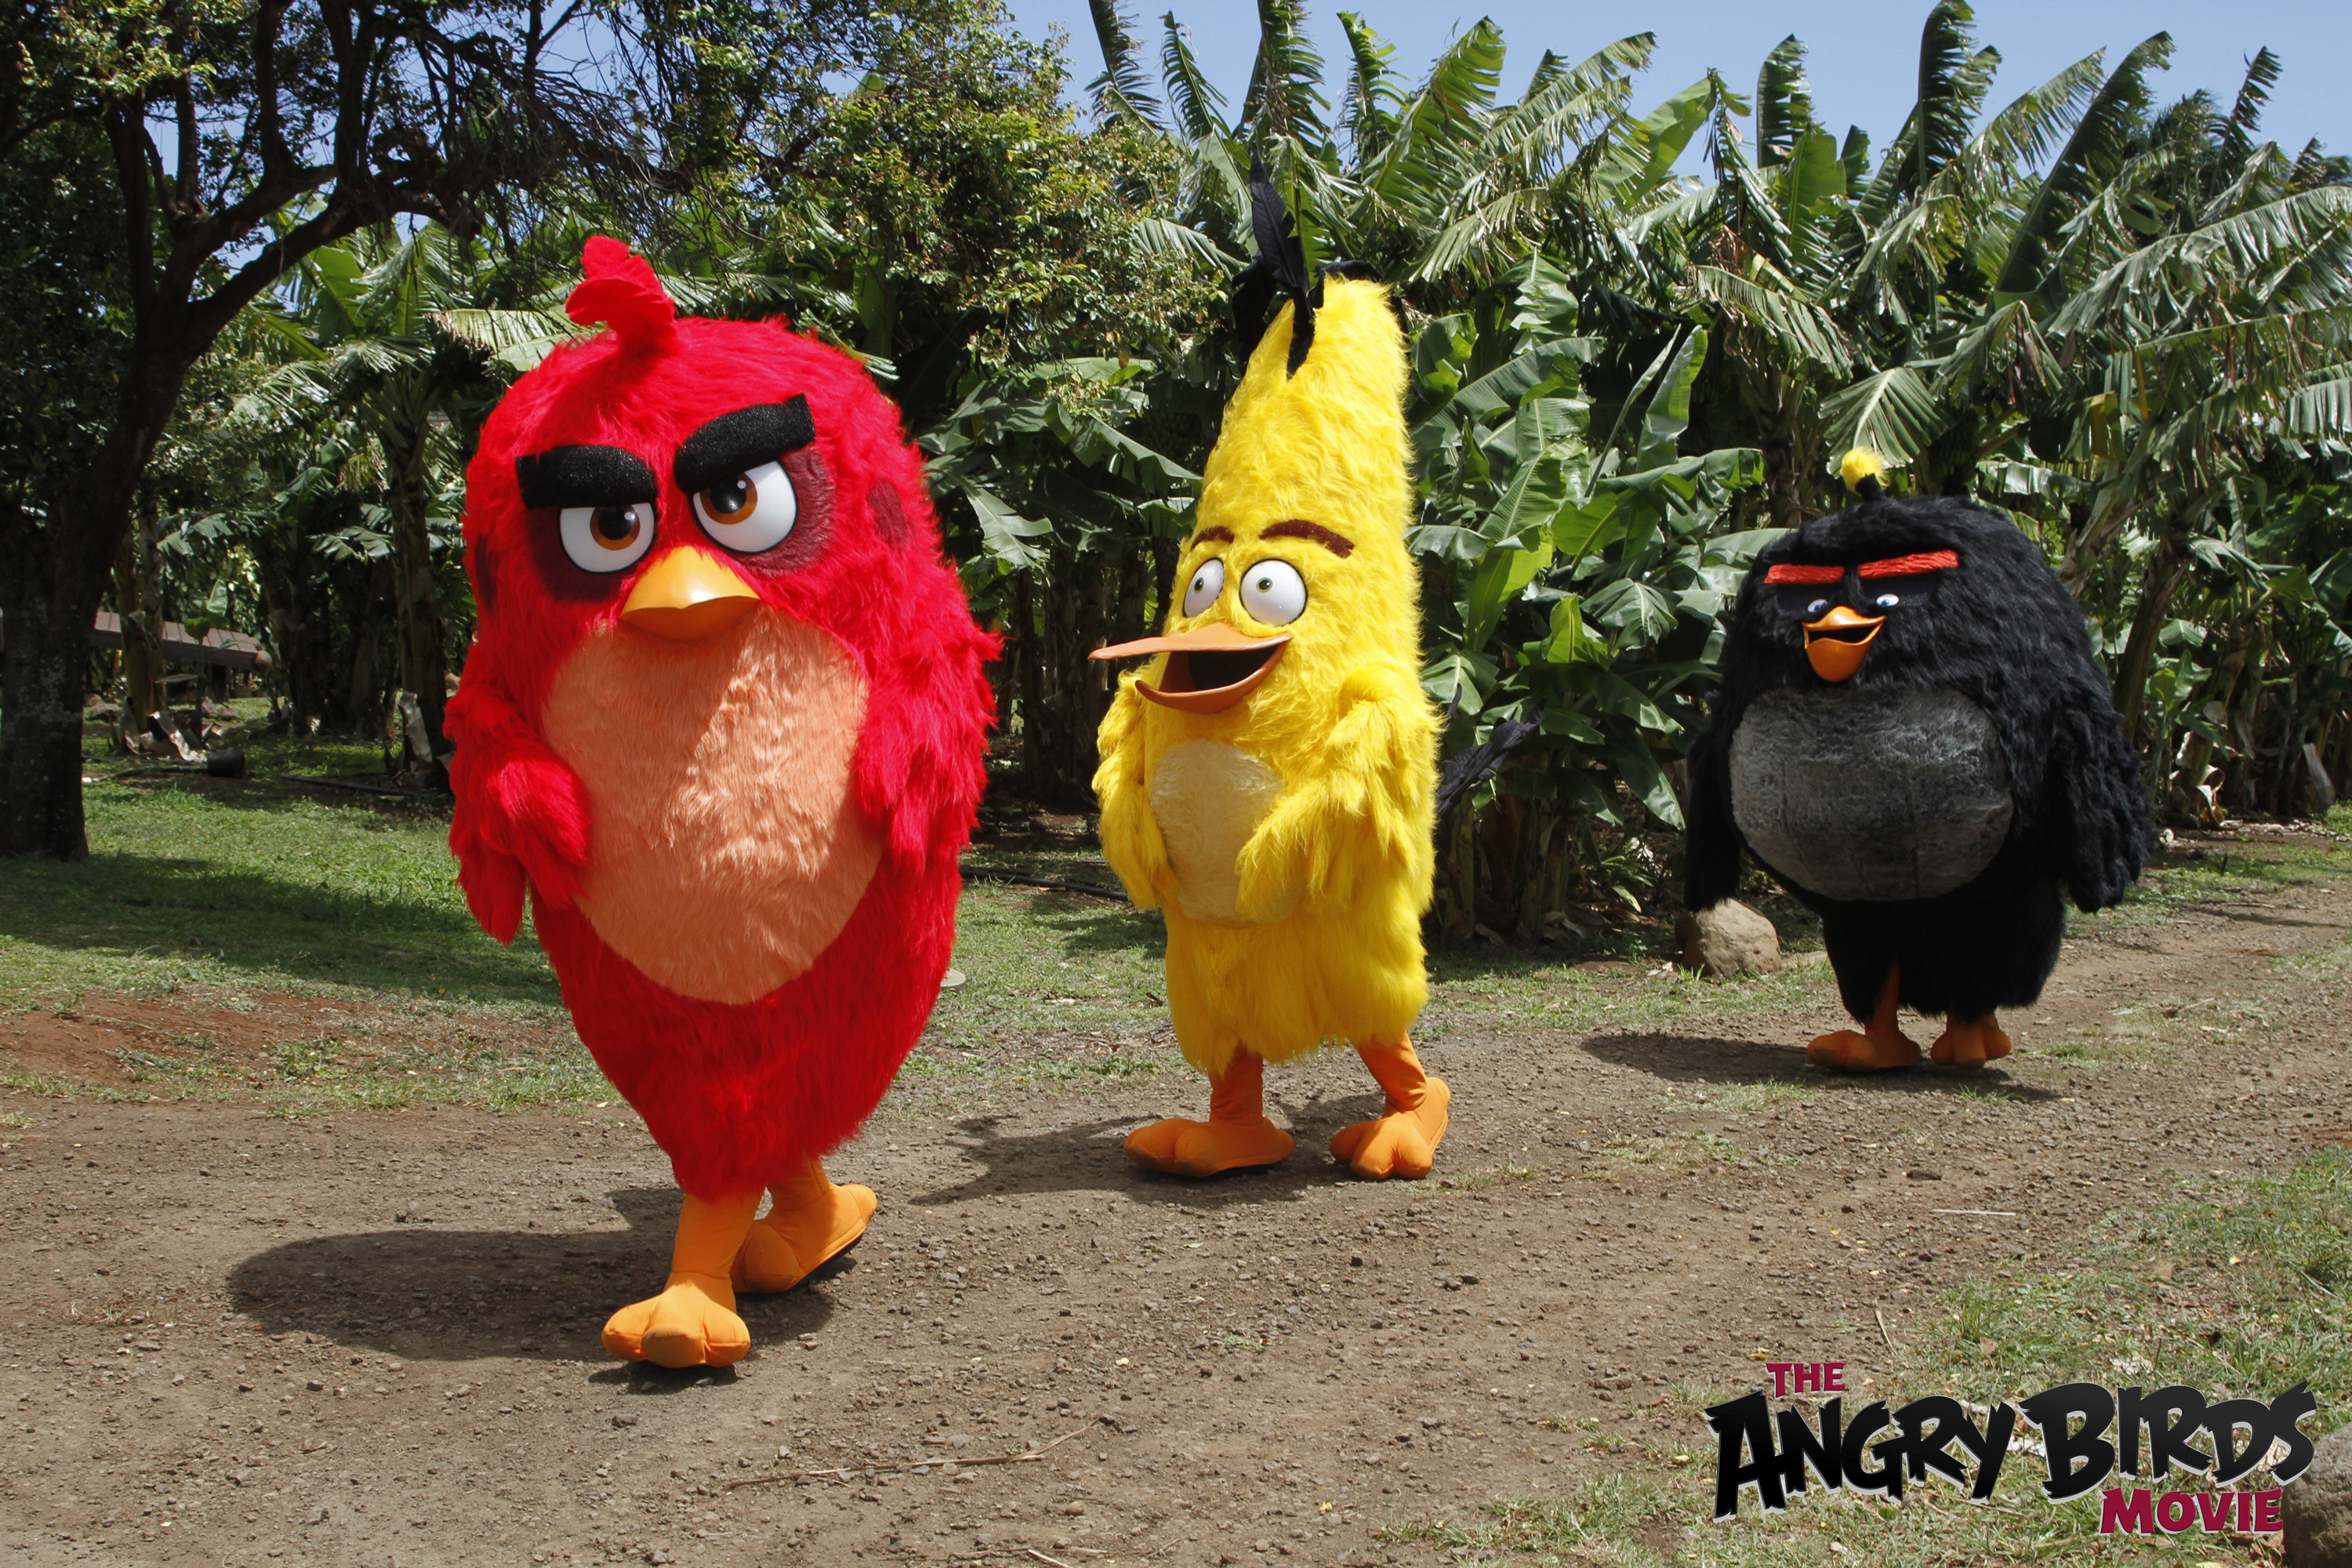 I Explored Bird Island With The Angry Birds #AlohaAngryBirds